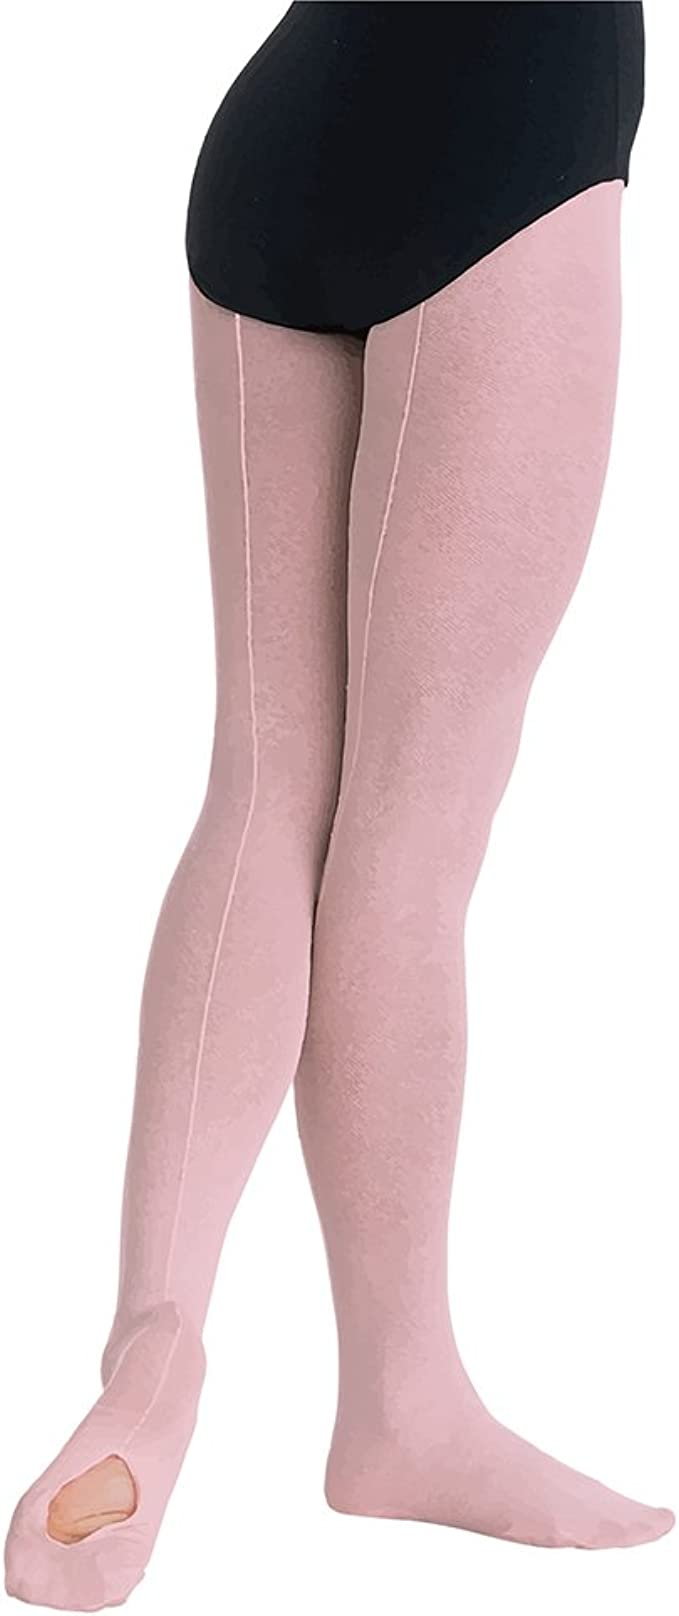 Capezio 5 Women/'s Size Small Ballet Pink Footed Tights with Back Seam